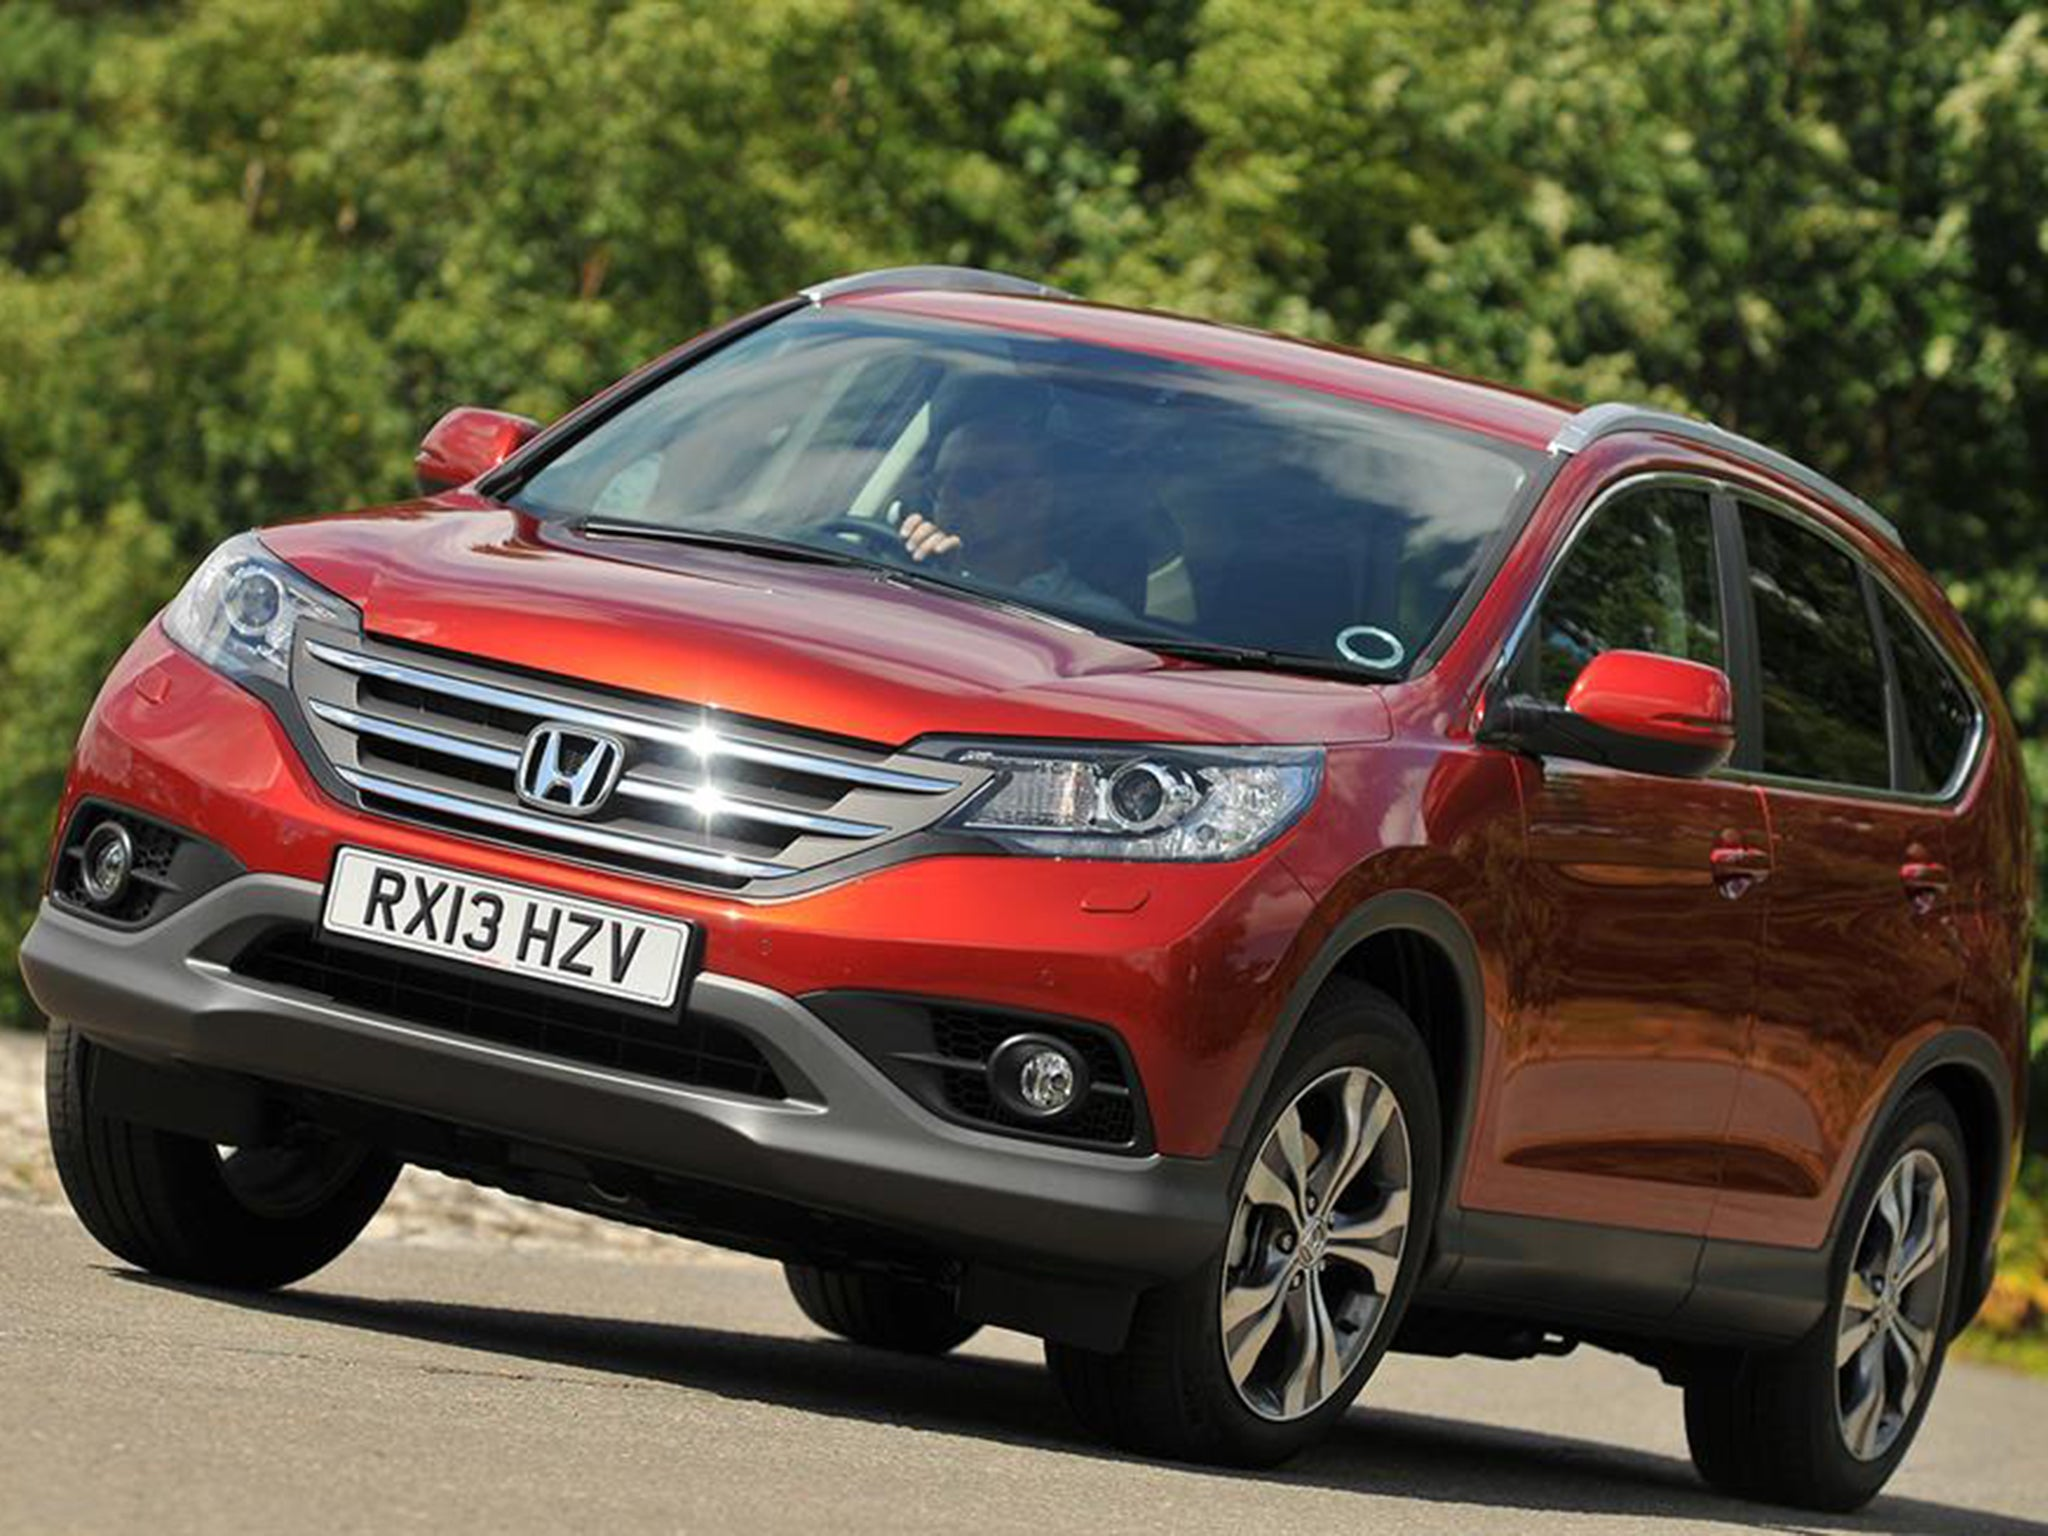 Top 10 second-hand SUVs: From the Volvo XC90 to the Land